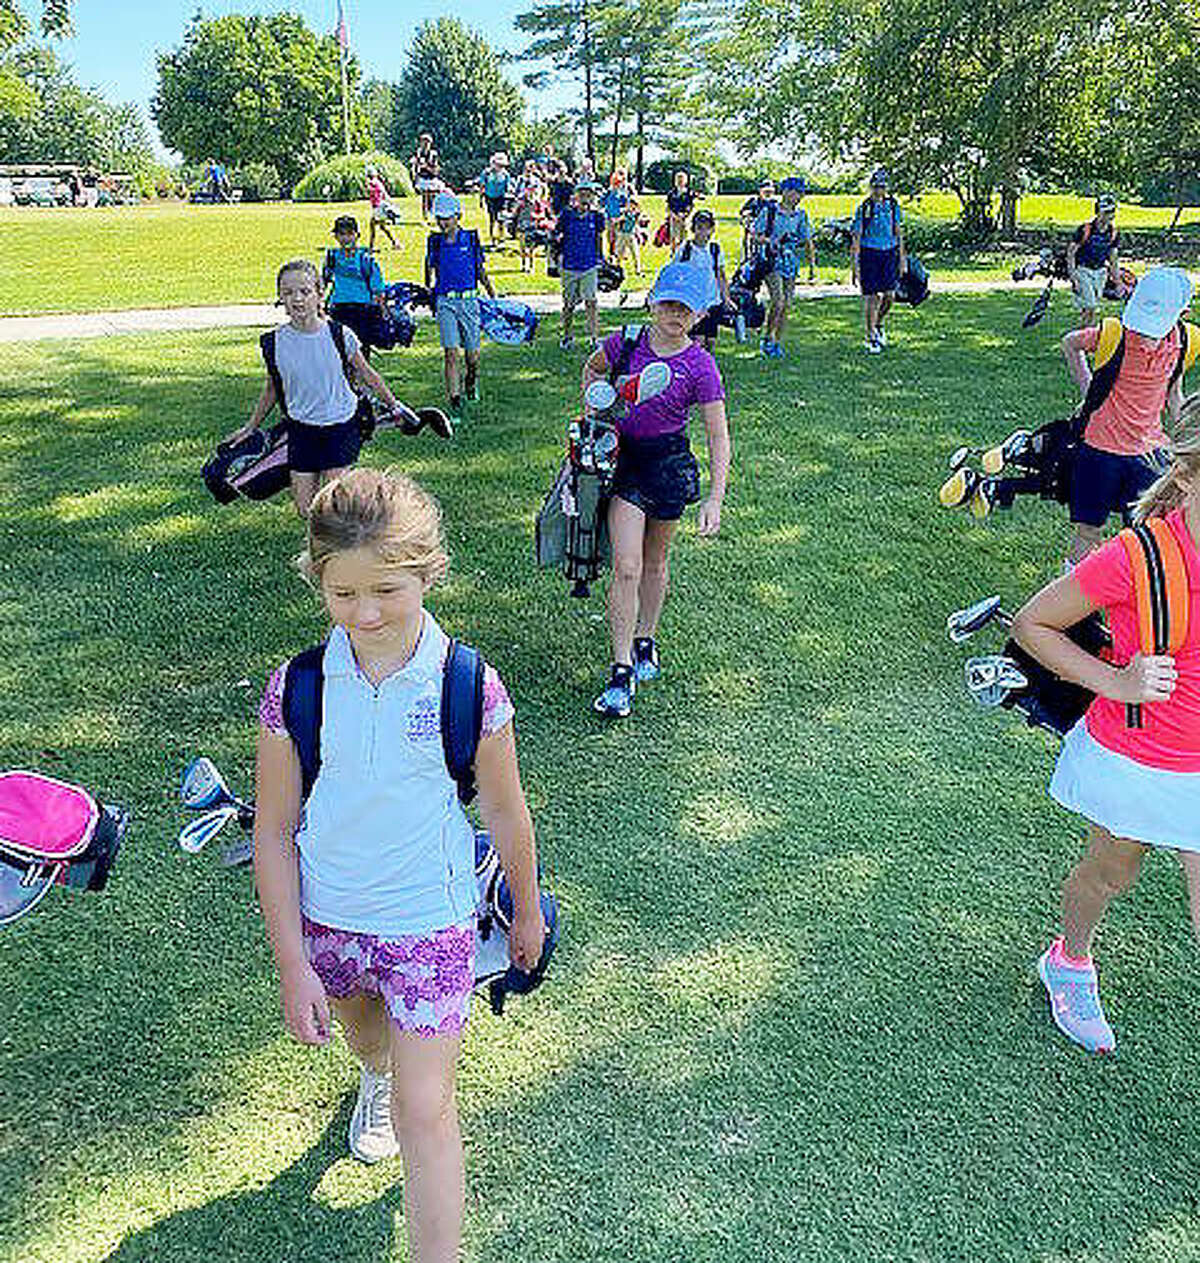 Golfers from the PGA Junior League during a practice session last year at Sunset Hills Country Club.